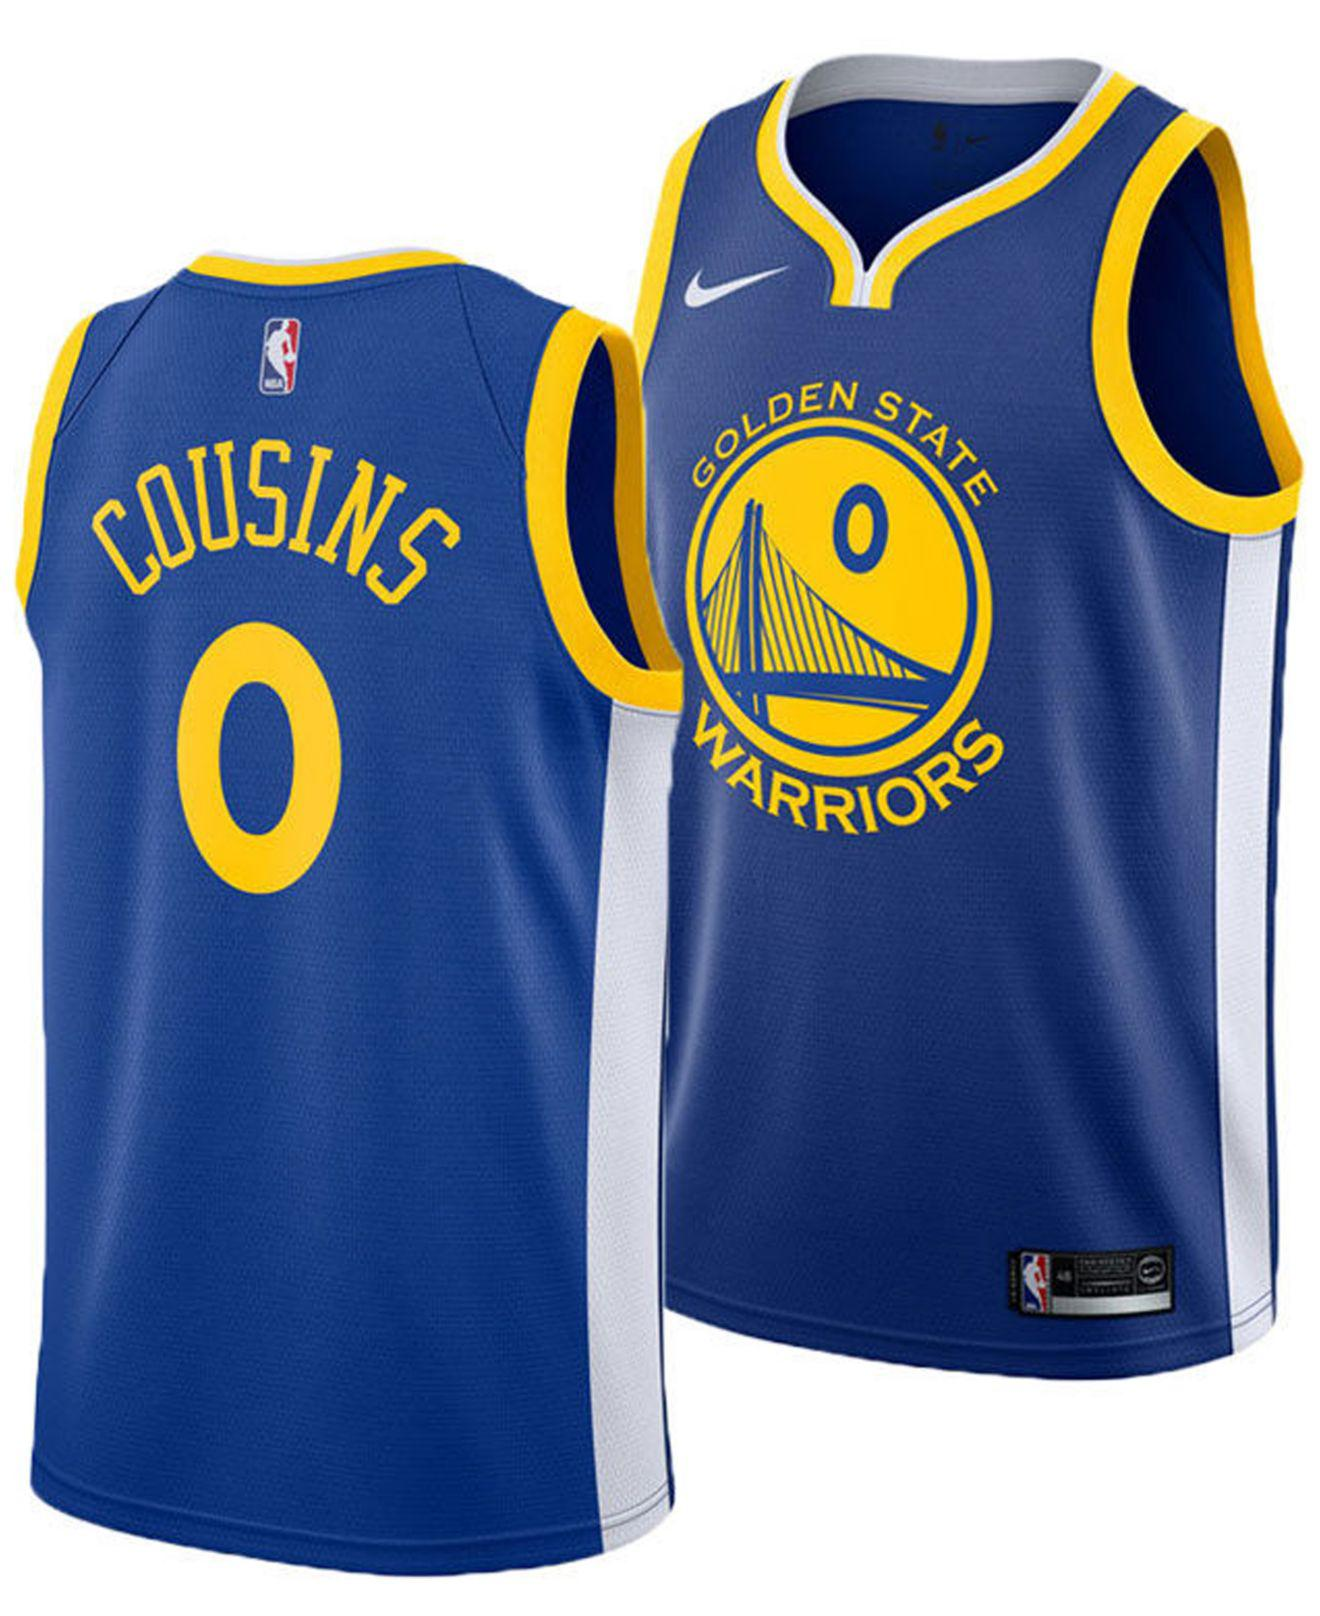 ad08e6da4 Nike. Men s Blue Demarcus Cousins Golden State Warriors Icon Swingman Jersey